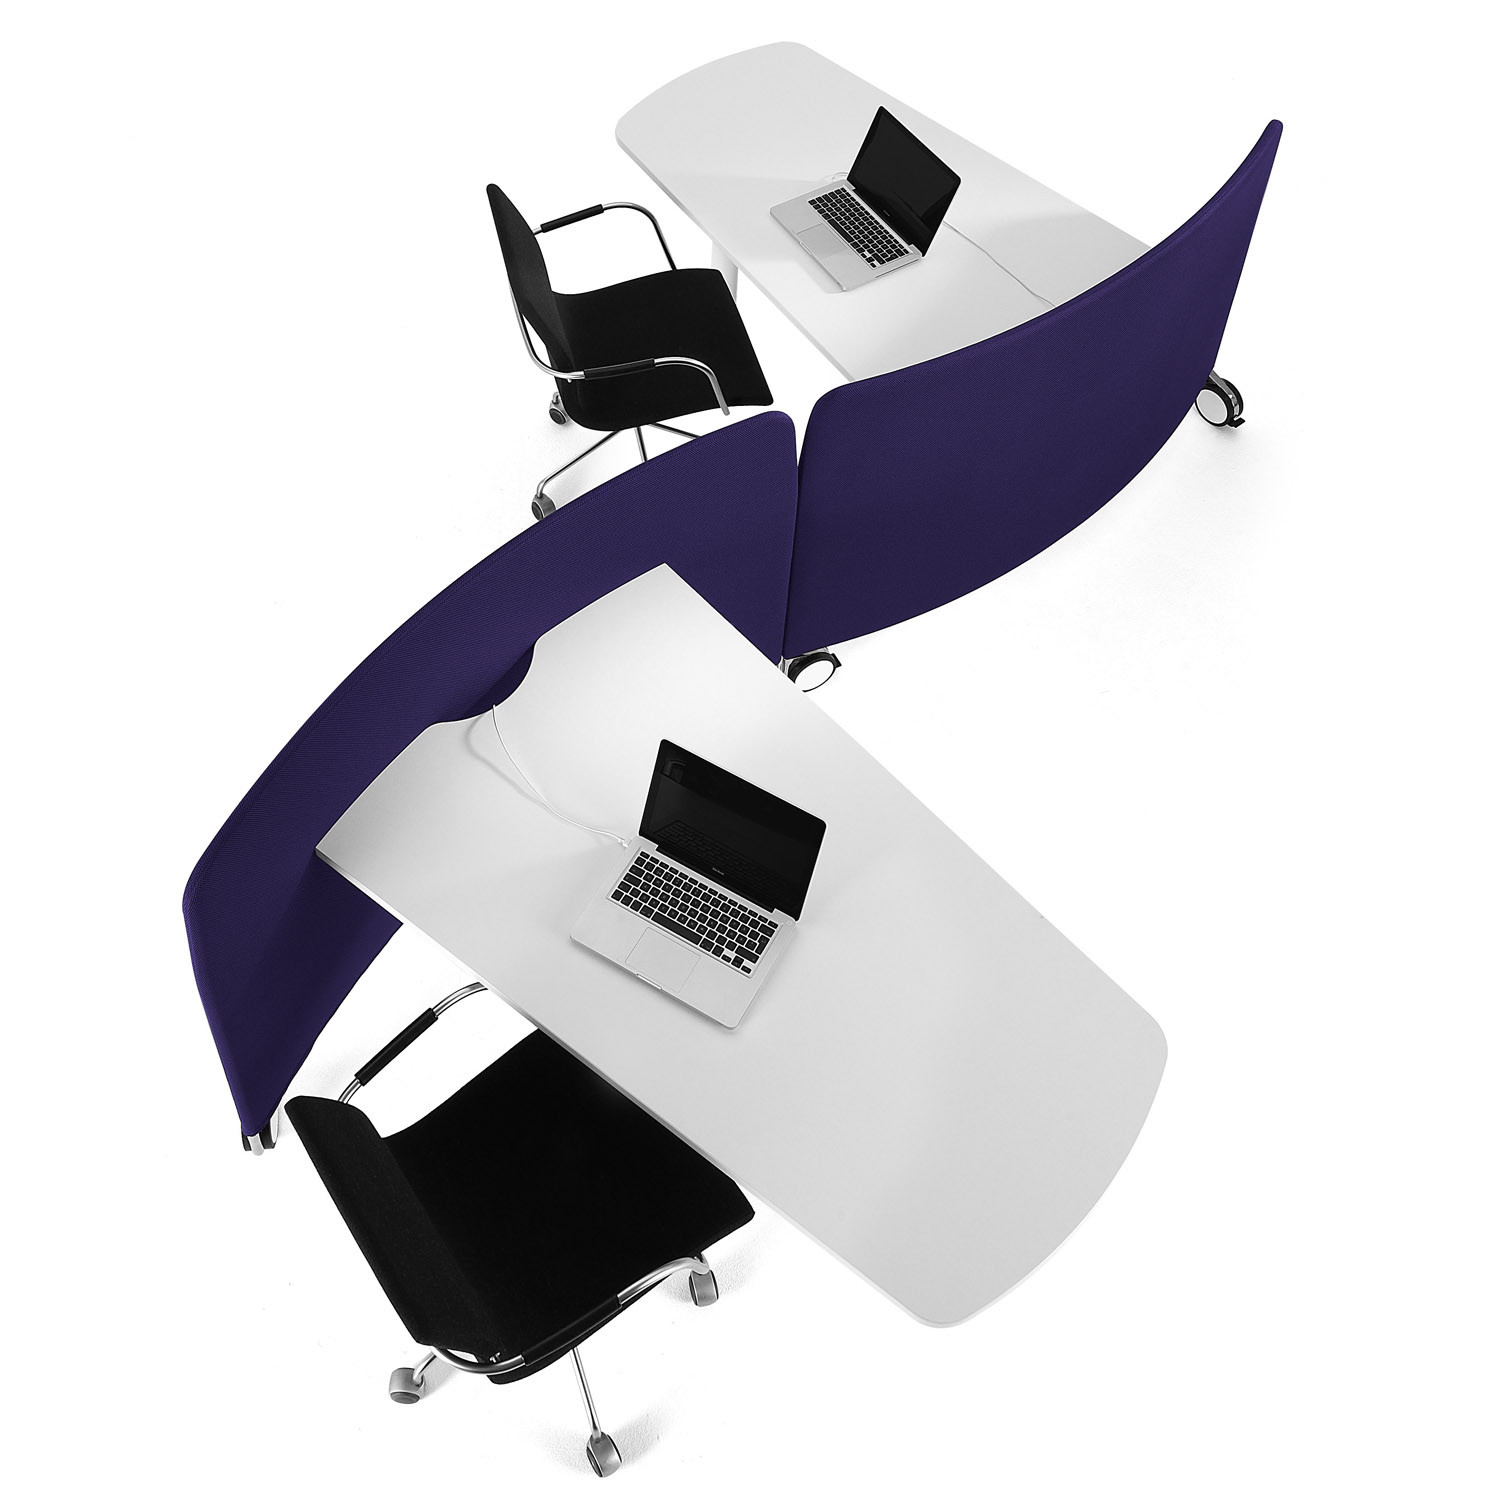 Mobi Workstation Desks